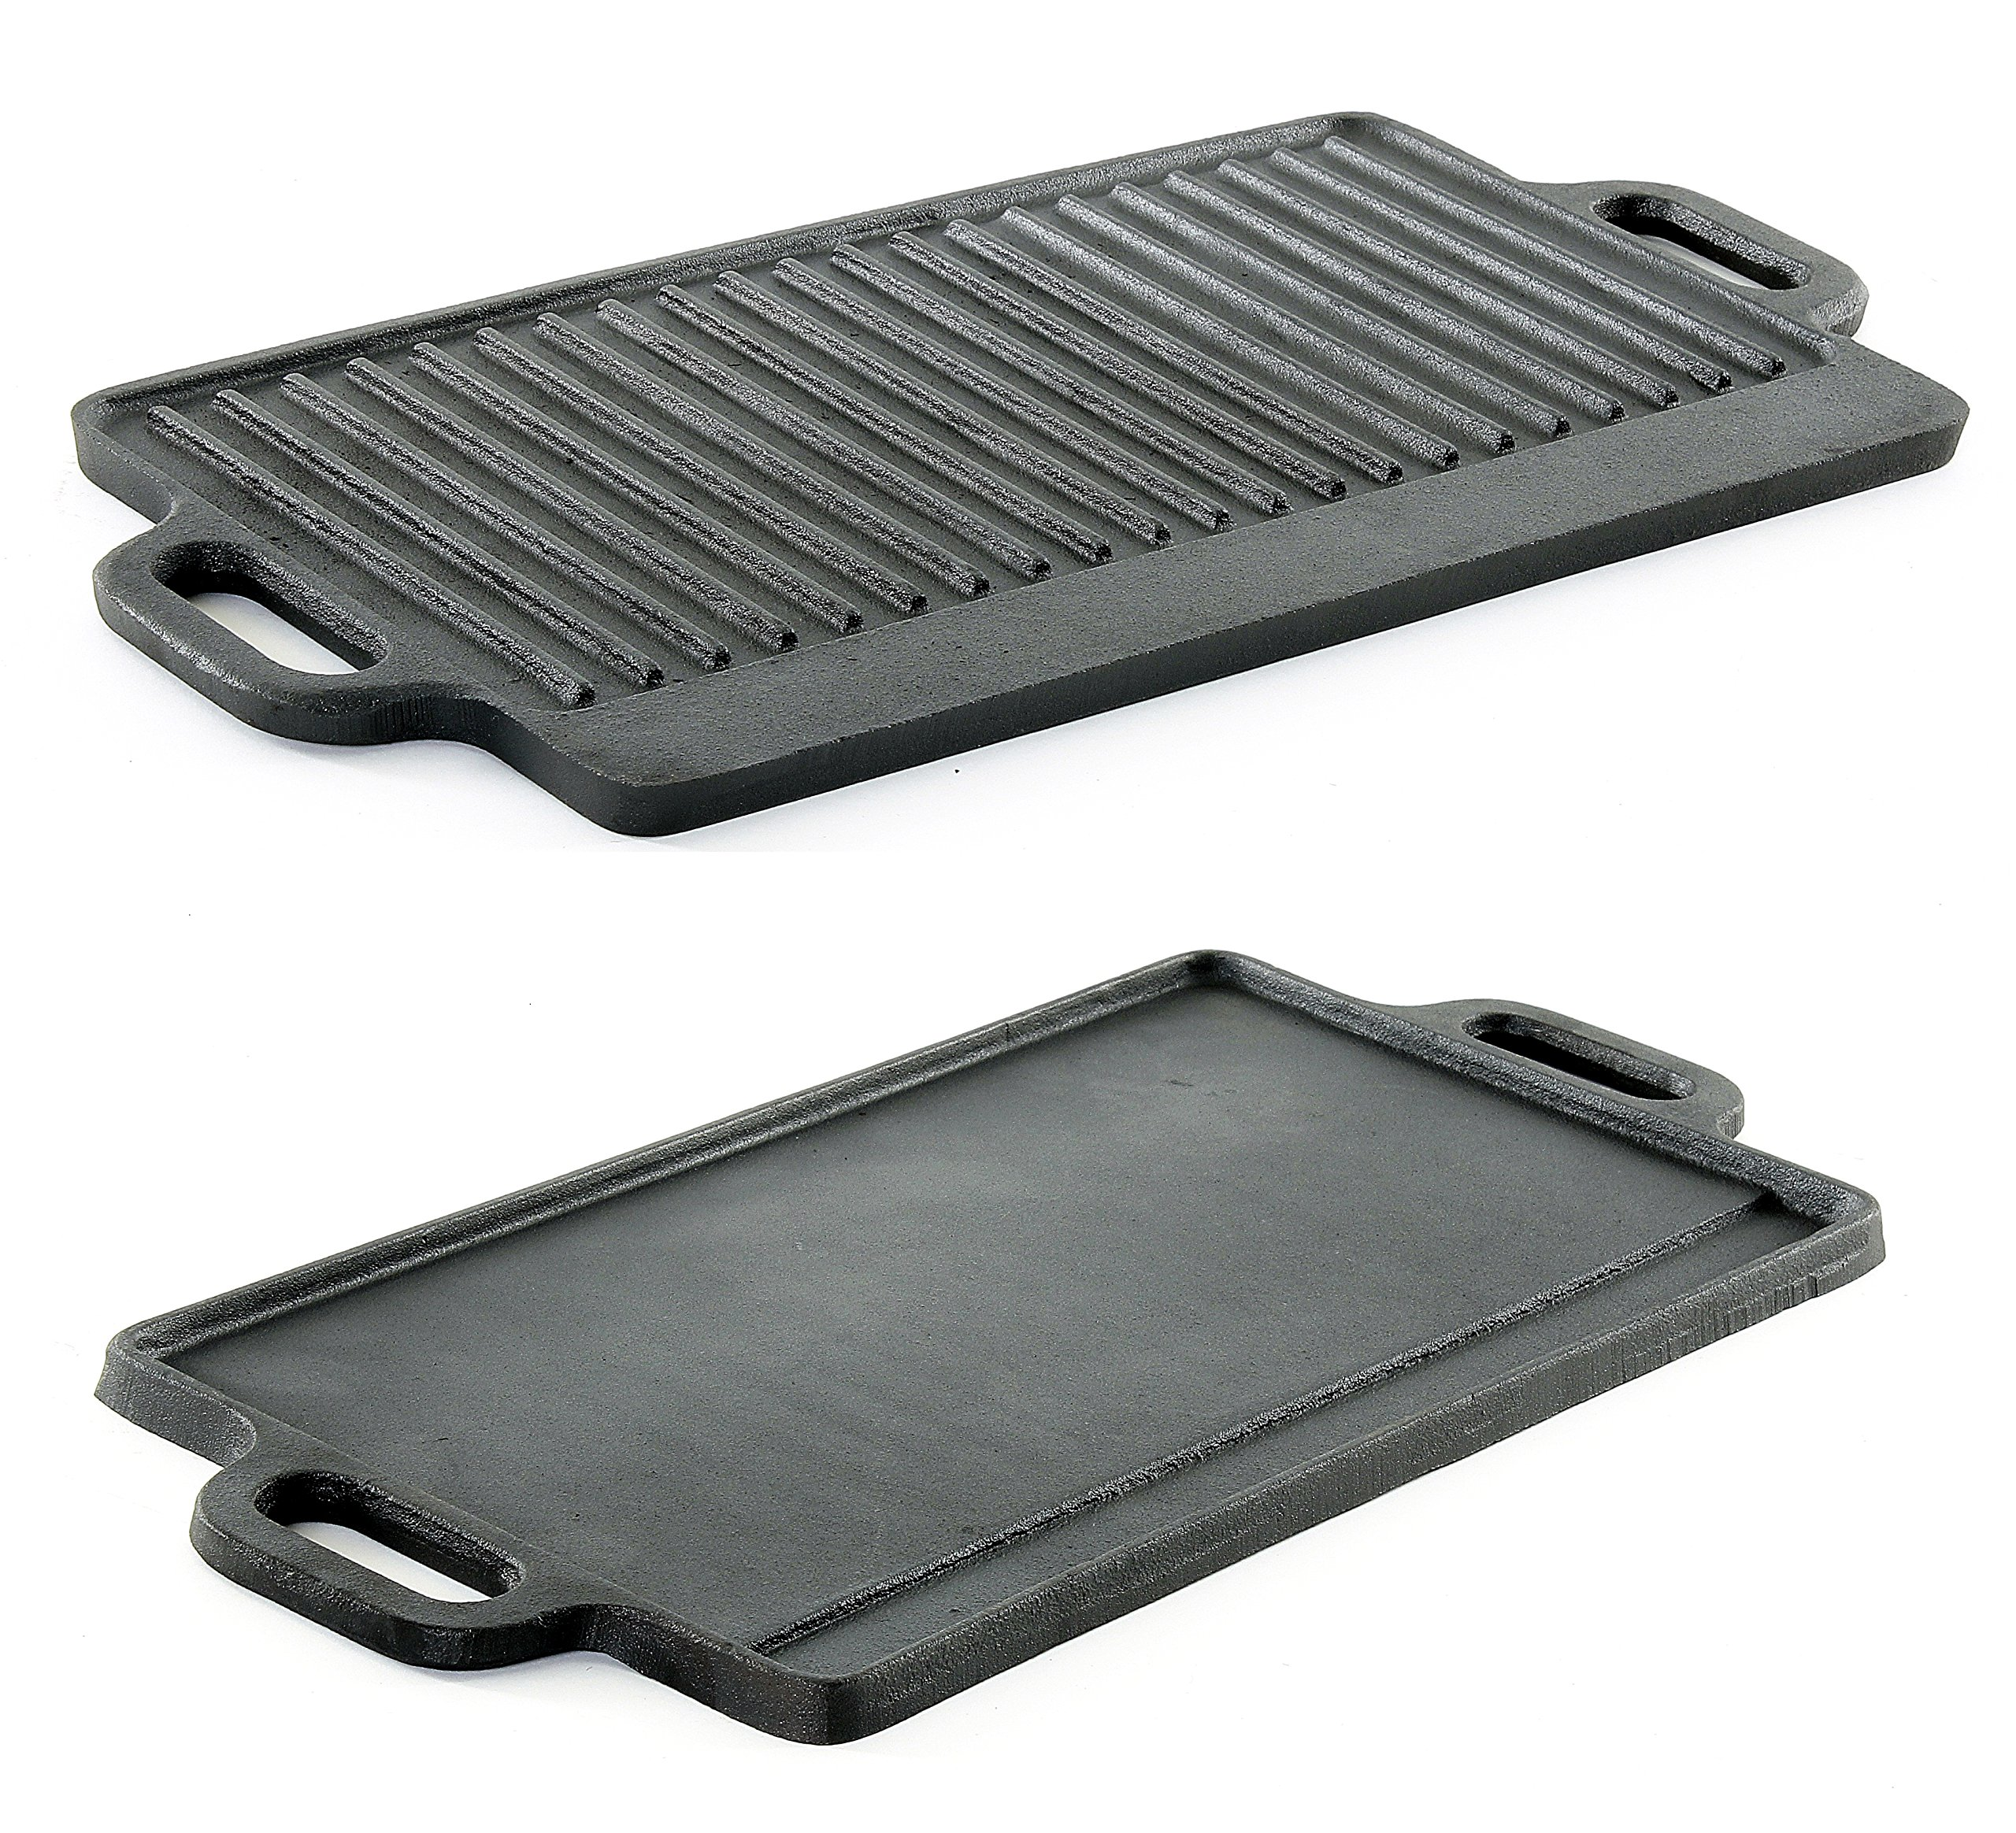 ProSource Cast Iron Grill Griddle Professional Heavy Duty Reversible Double Burner Cast Iron Grill Griddle